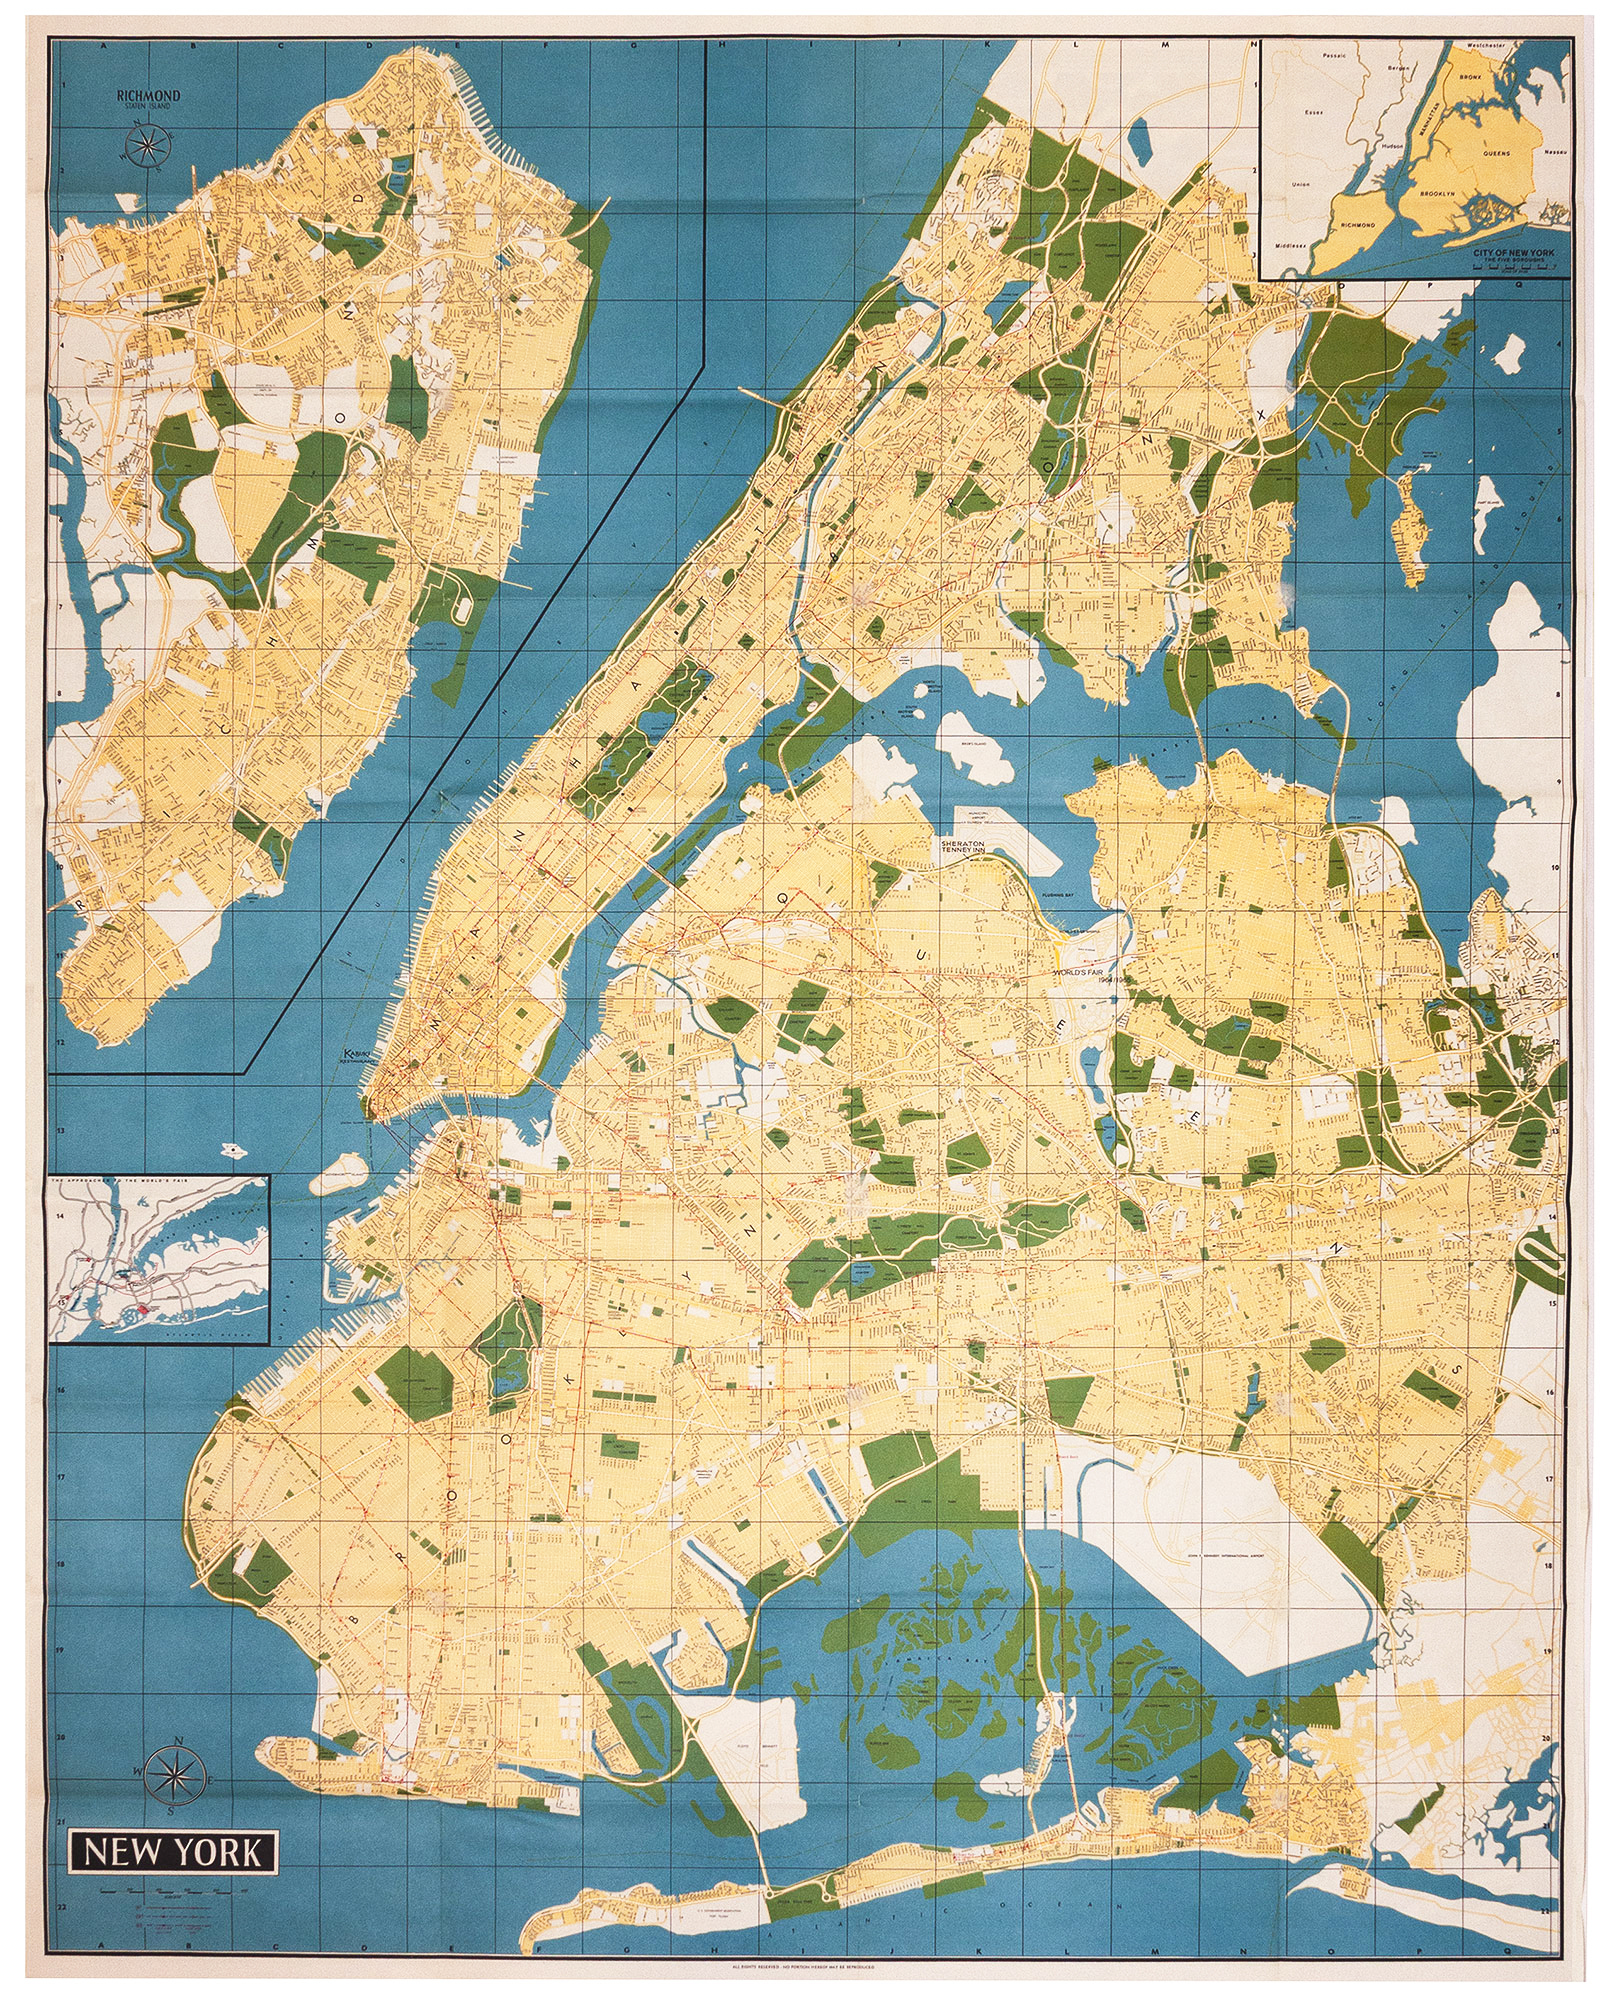 New York Map-Guide by H. BOLLMANN on Martayan Lan